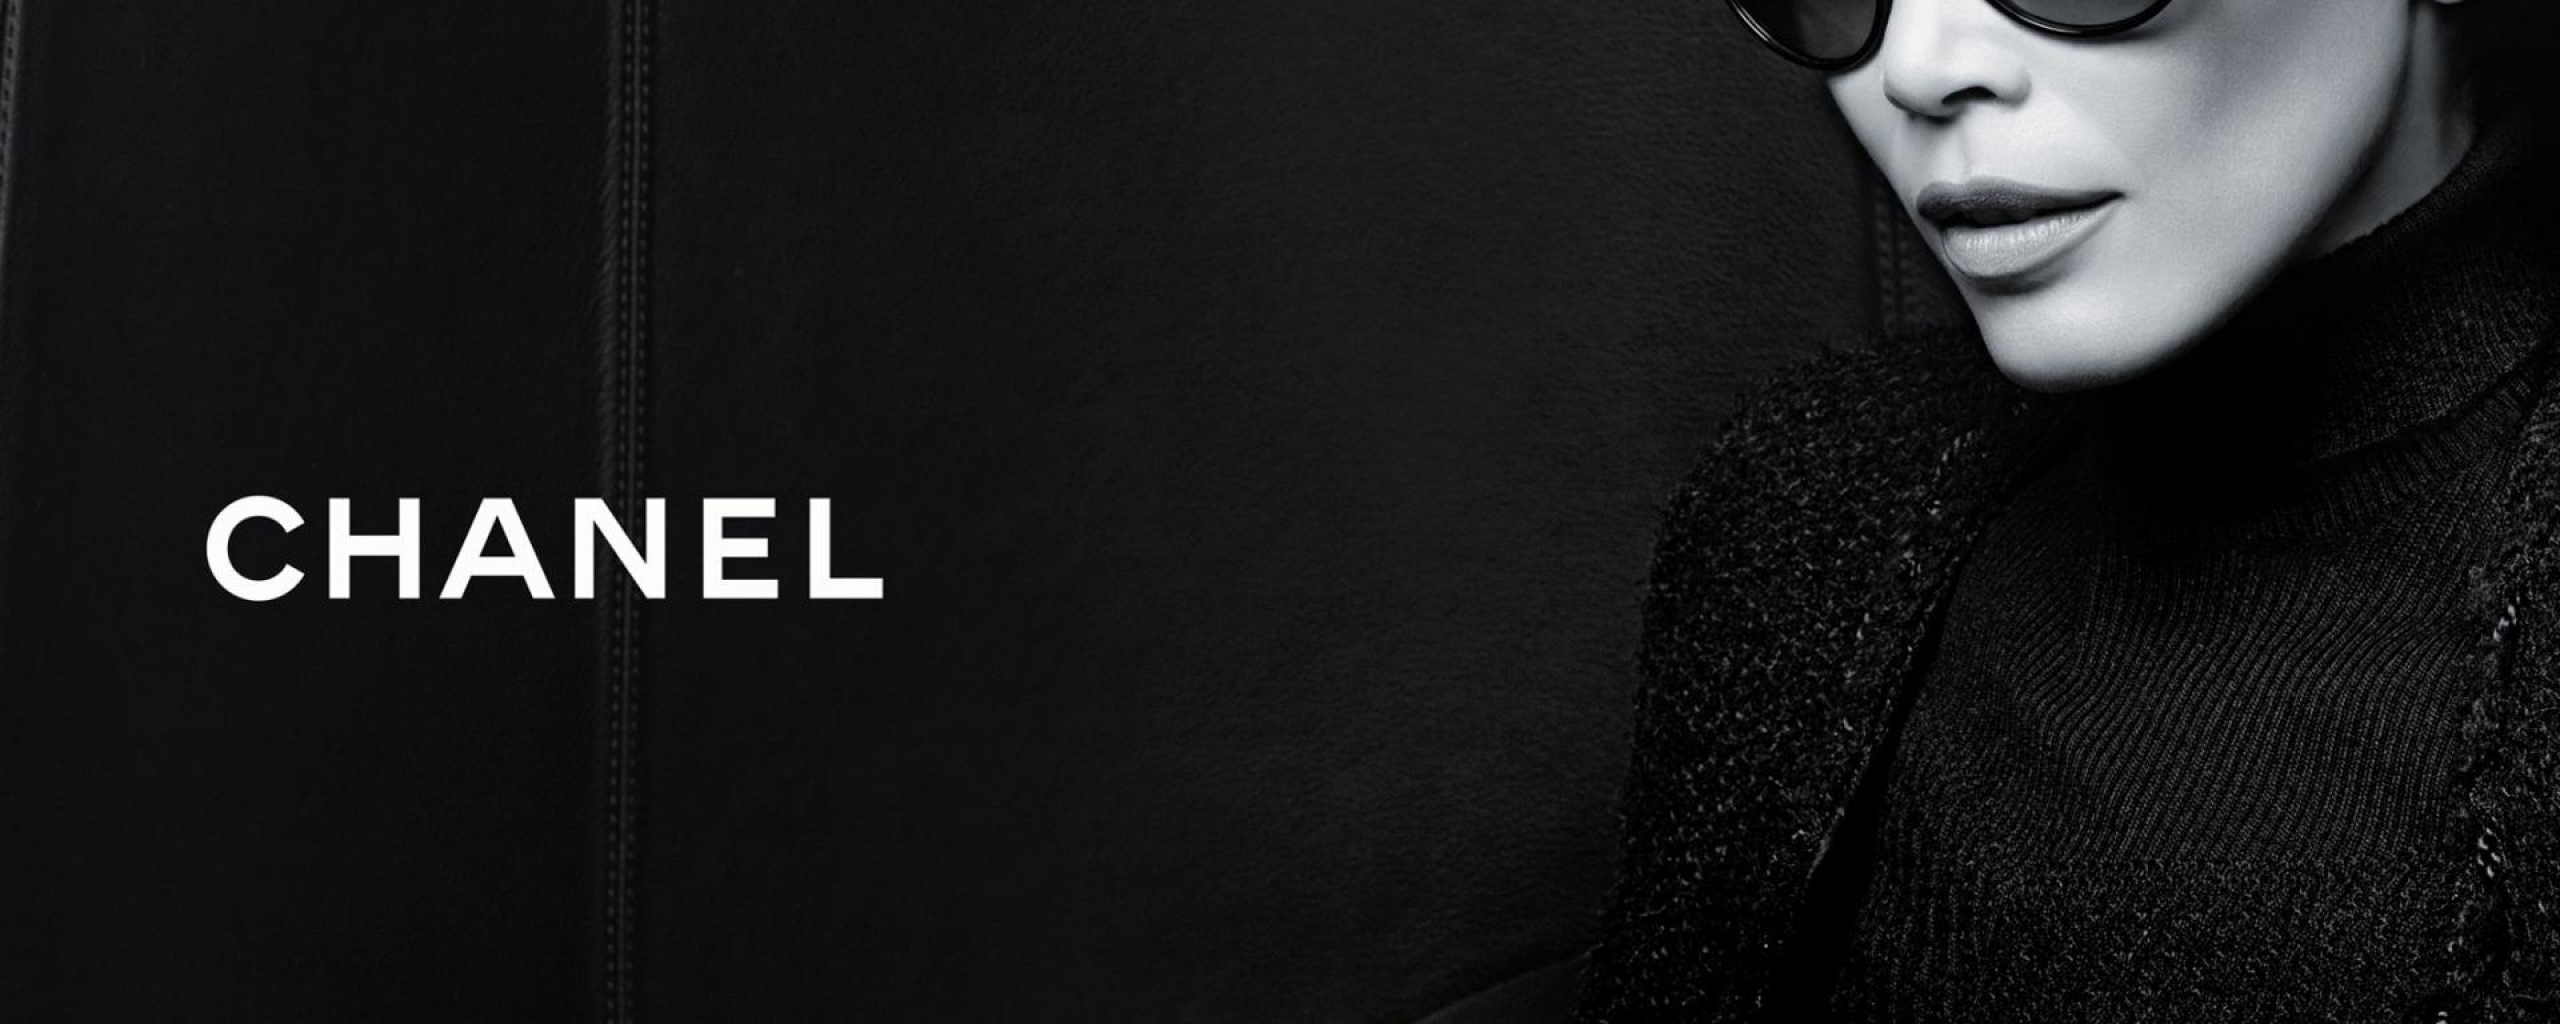 chanel wallpaper for facebook full hd pictures